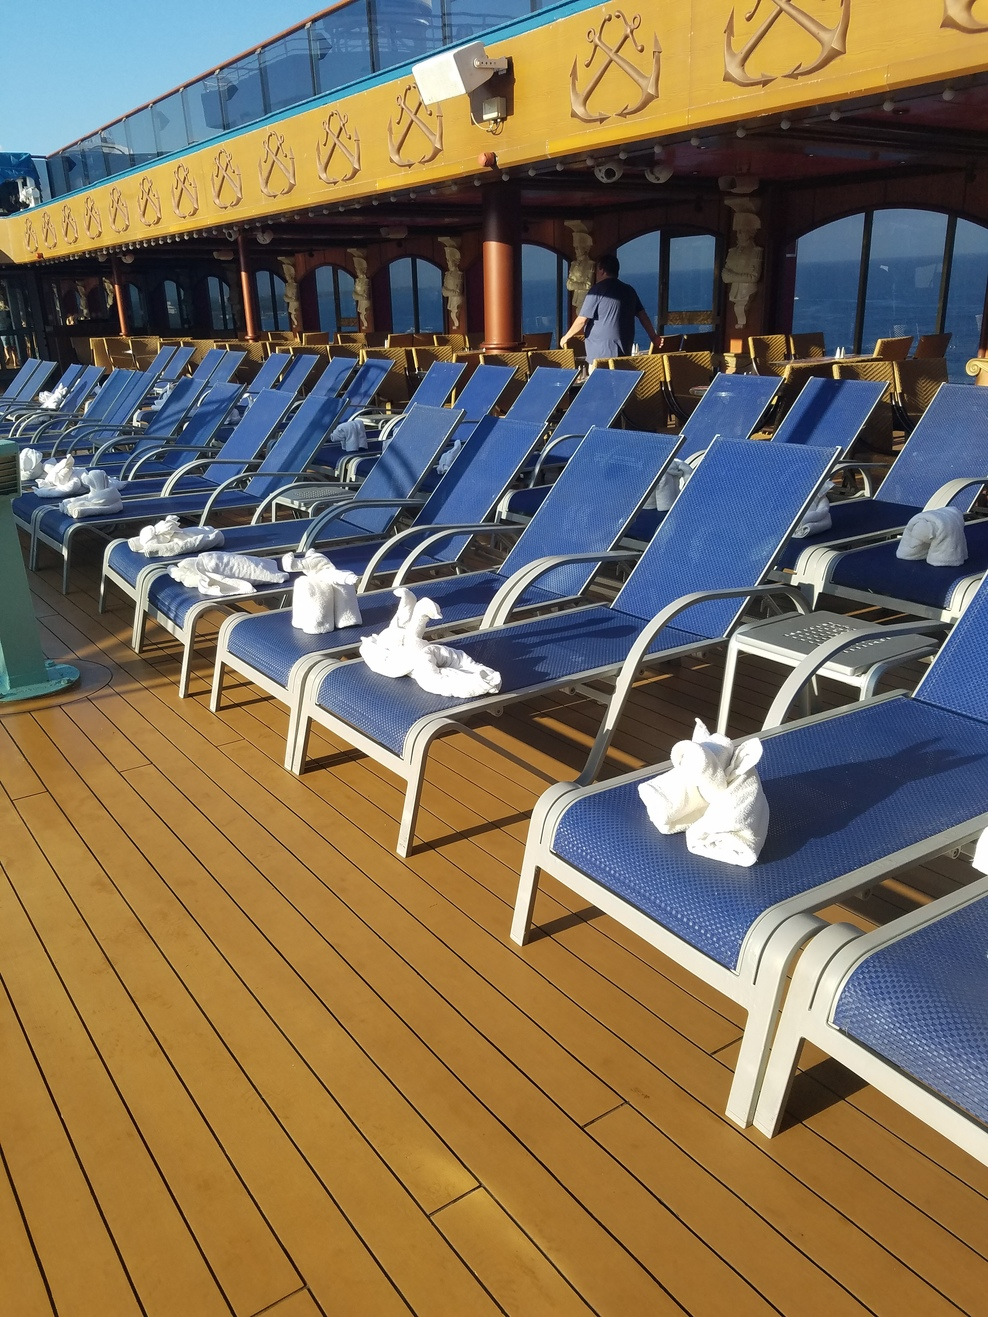 Pool Spa Fitness On Carnival Miracle Cruise Ship